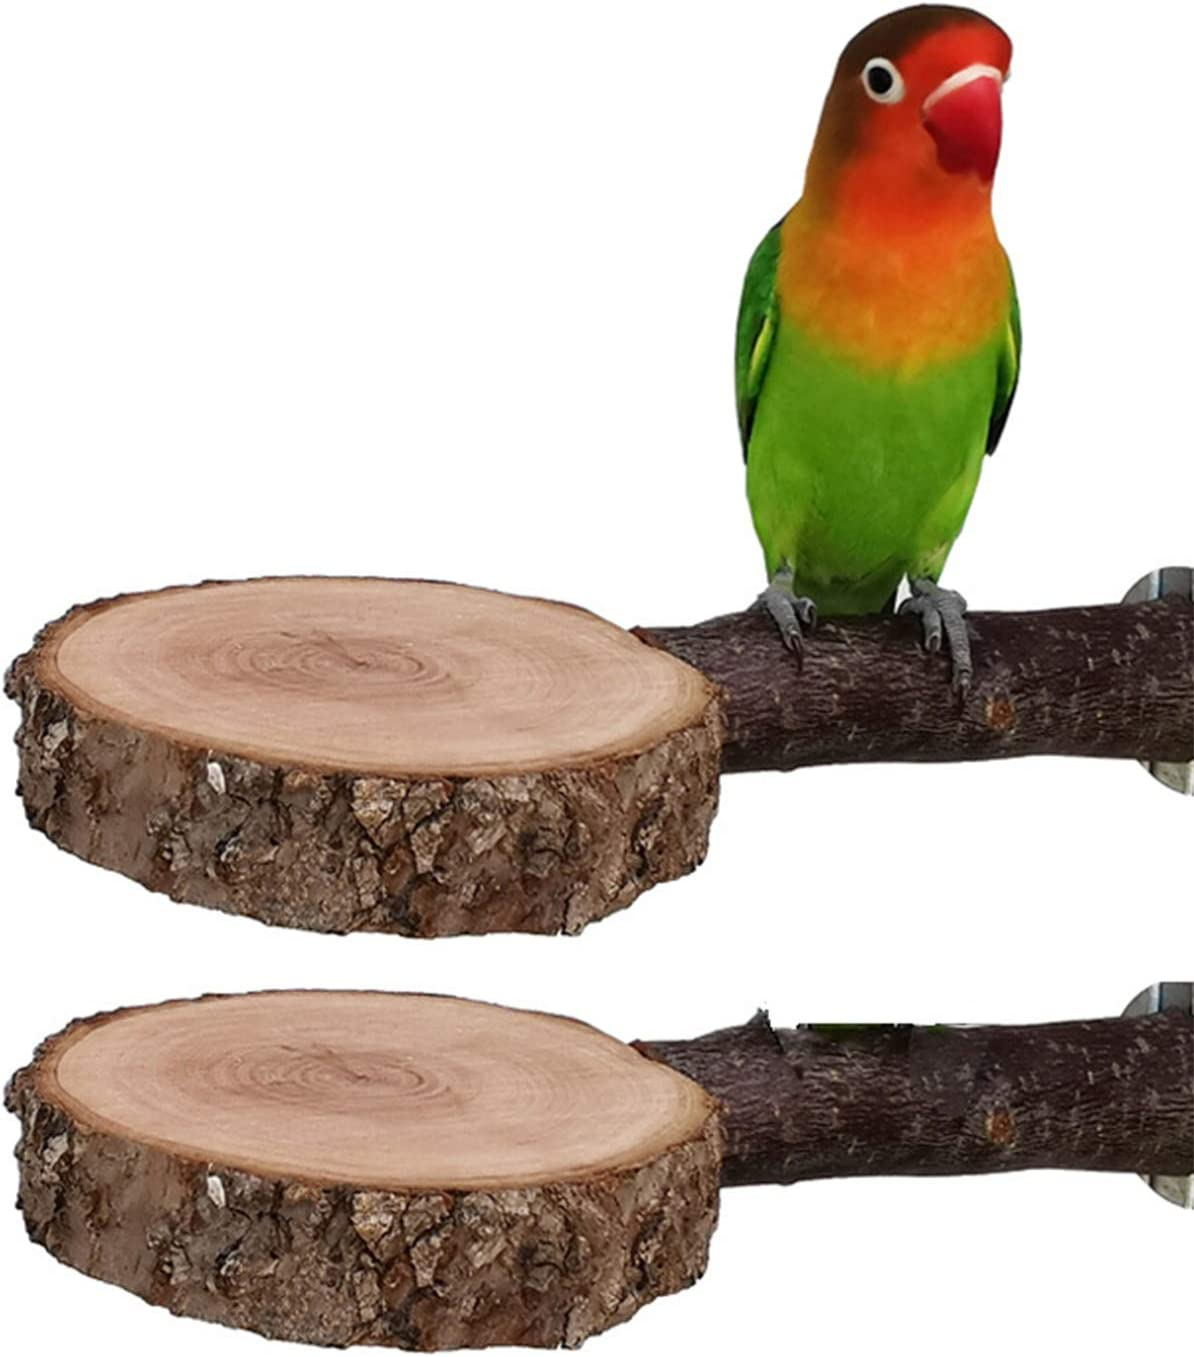 Tfwadmx Bird Perch Stand, Wooden Parrot Platform for Cage Natural Apple Wood Playground Cage Accessories for Small Parakeets Parrot Budgies Cockatiels Conure Lovebirds, 2 Pack